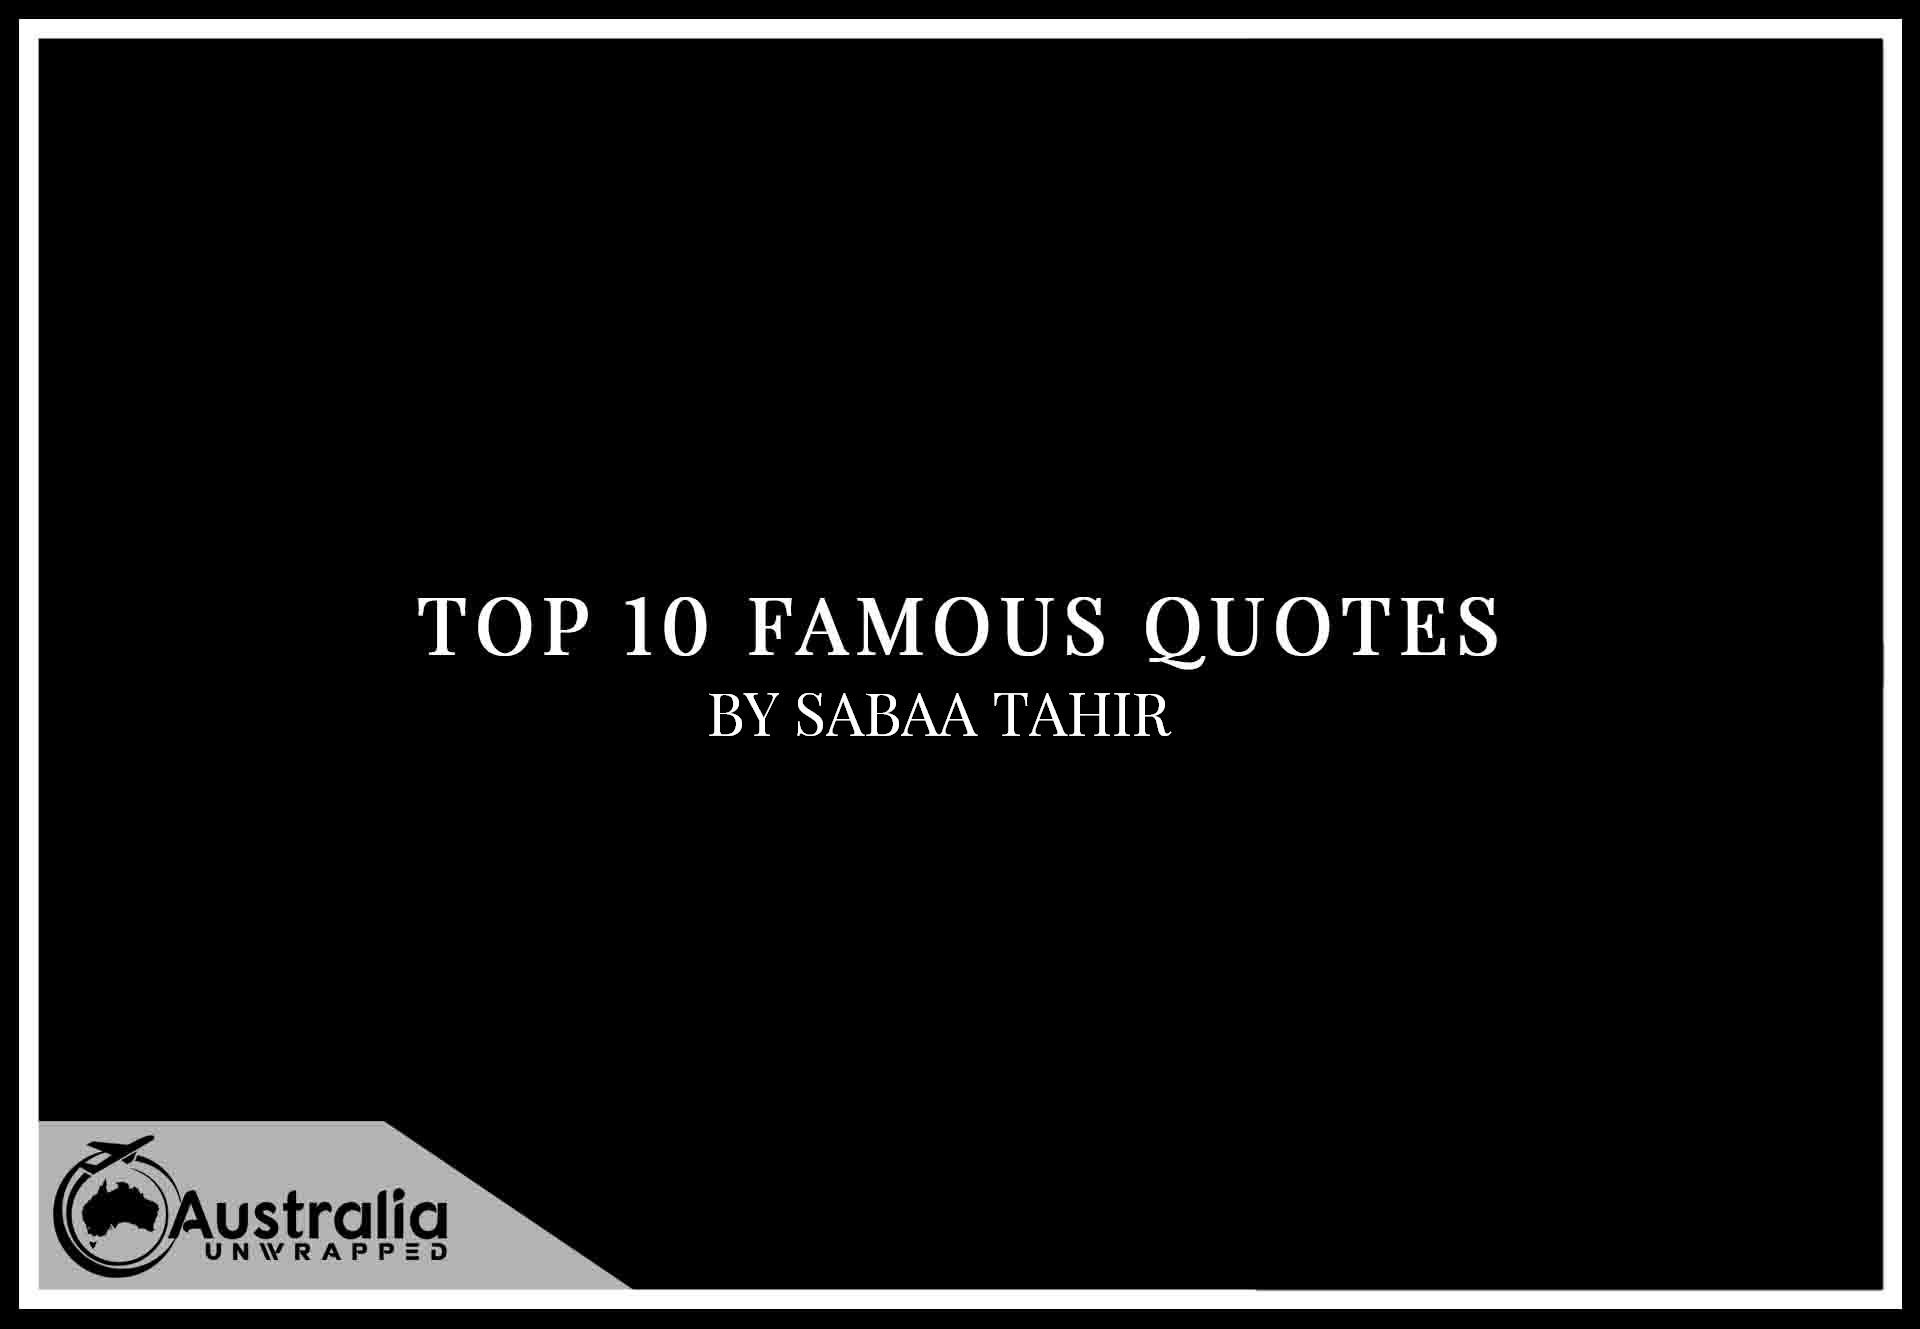 Top 10 Famous Quotes by Author Sabaa Tahir